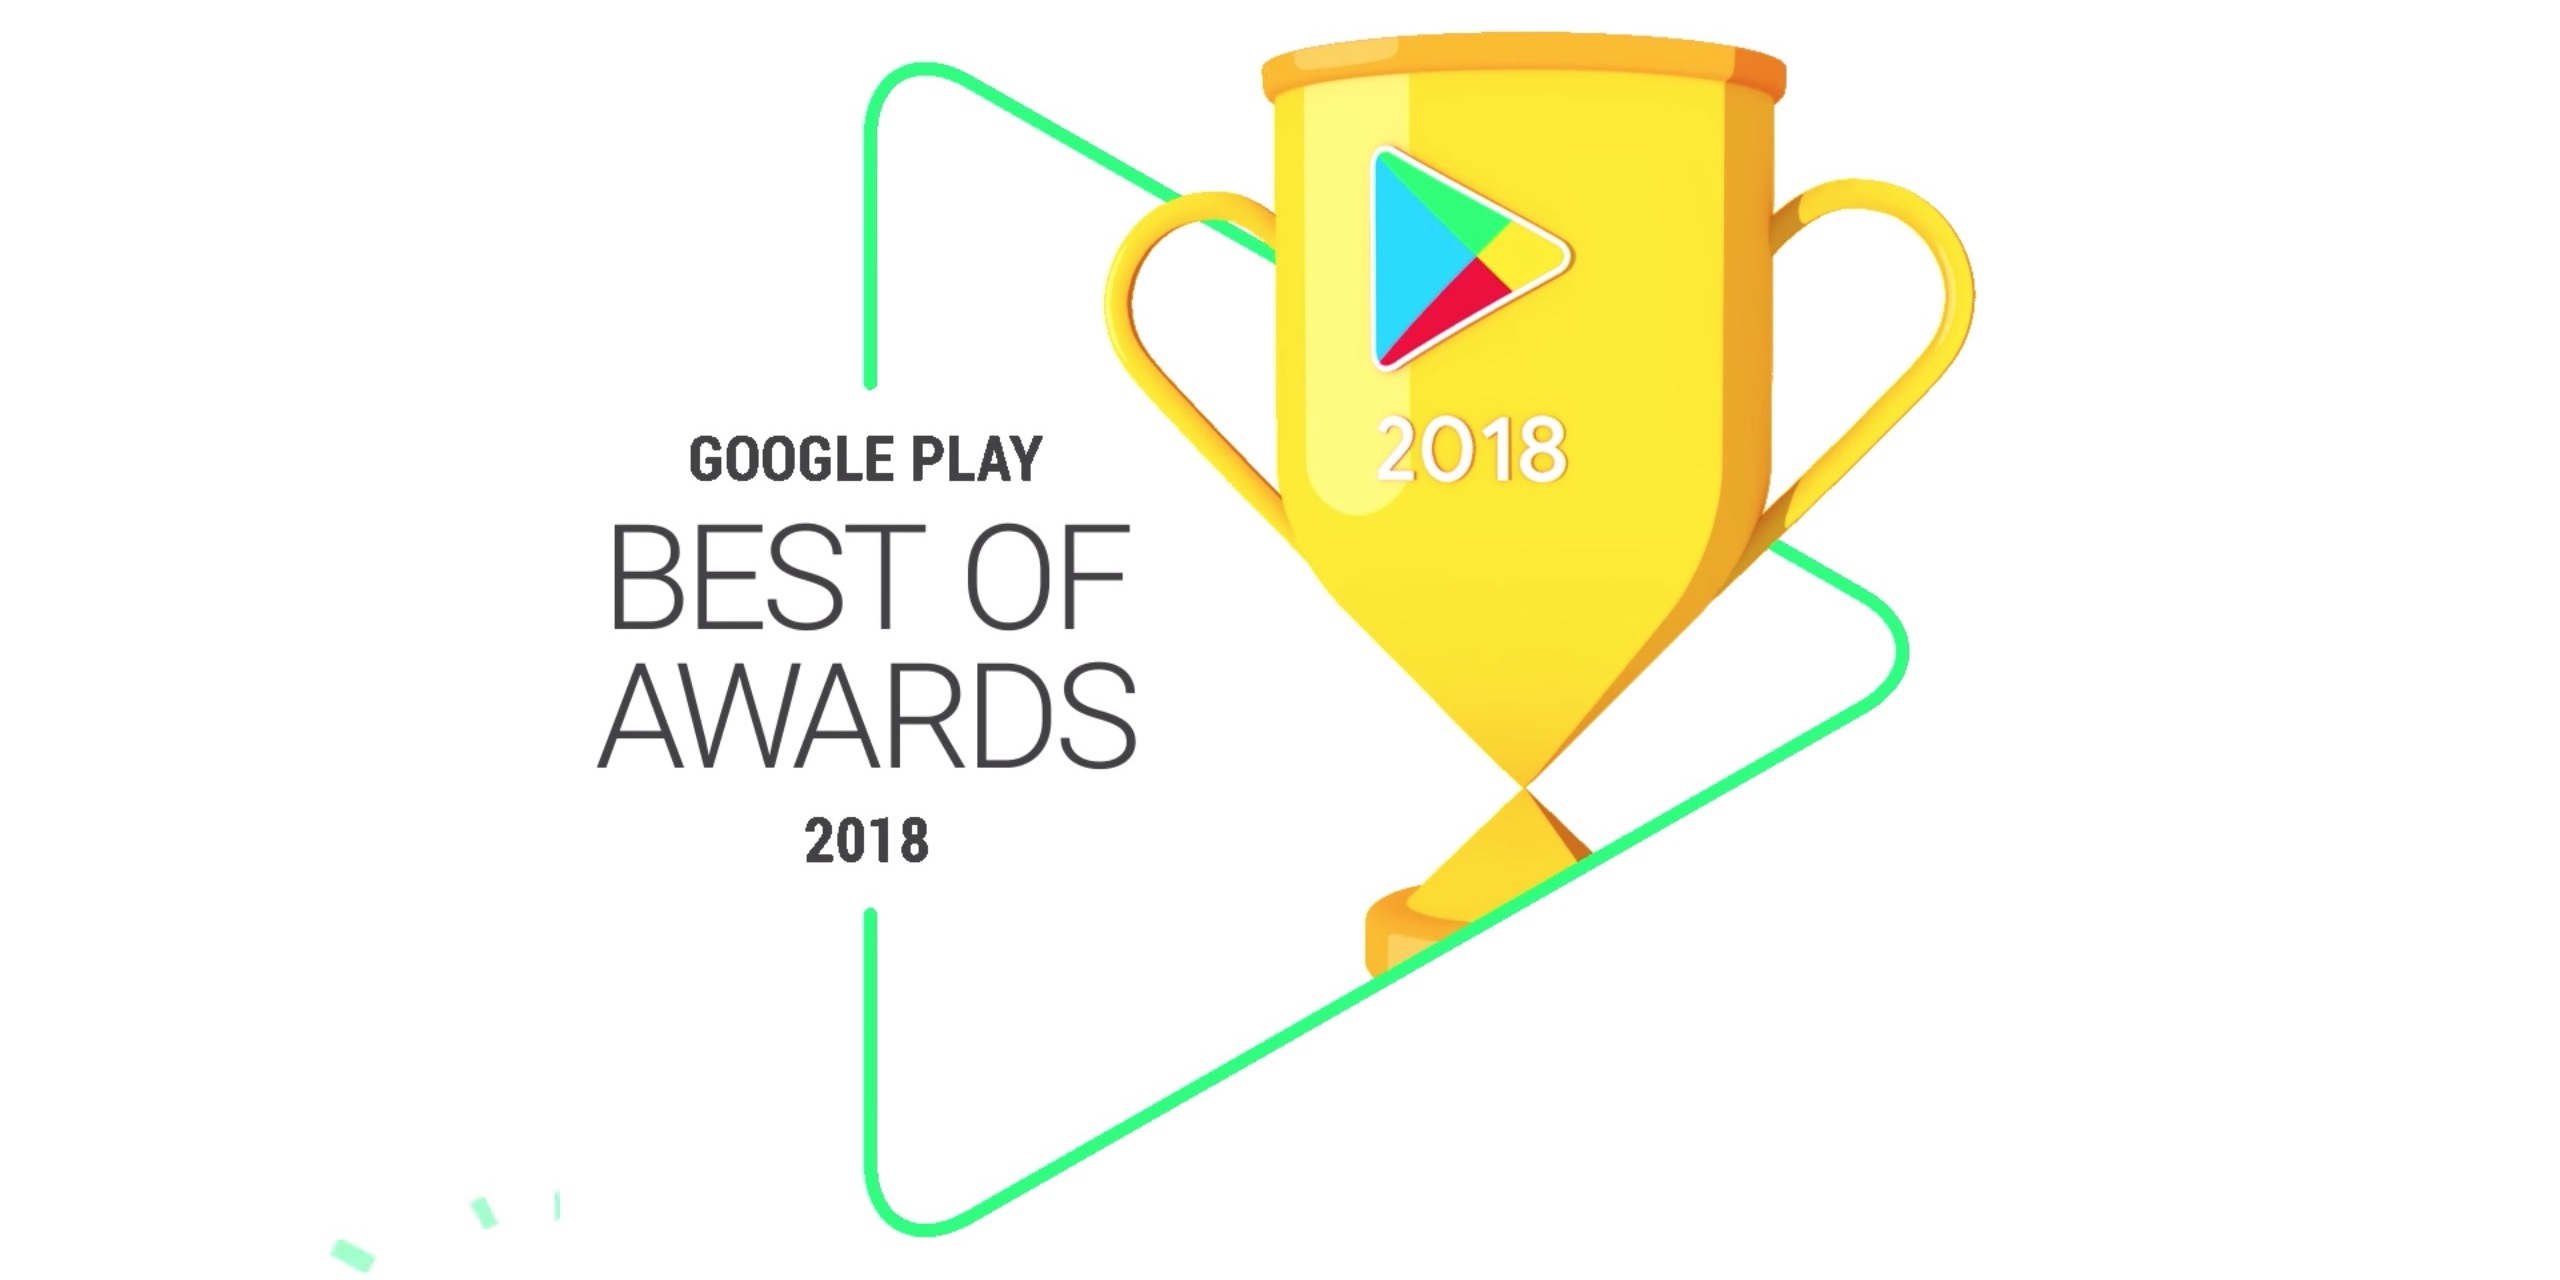 [Update: Now open] Google Play Best of 2018 Awards will include Fan Favorite voting